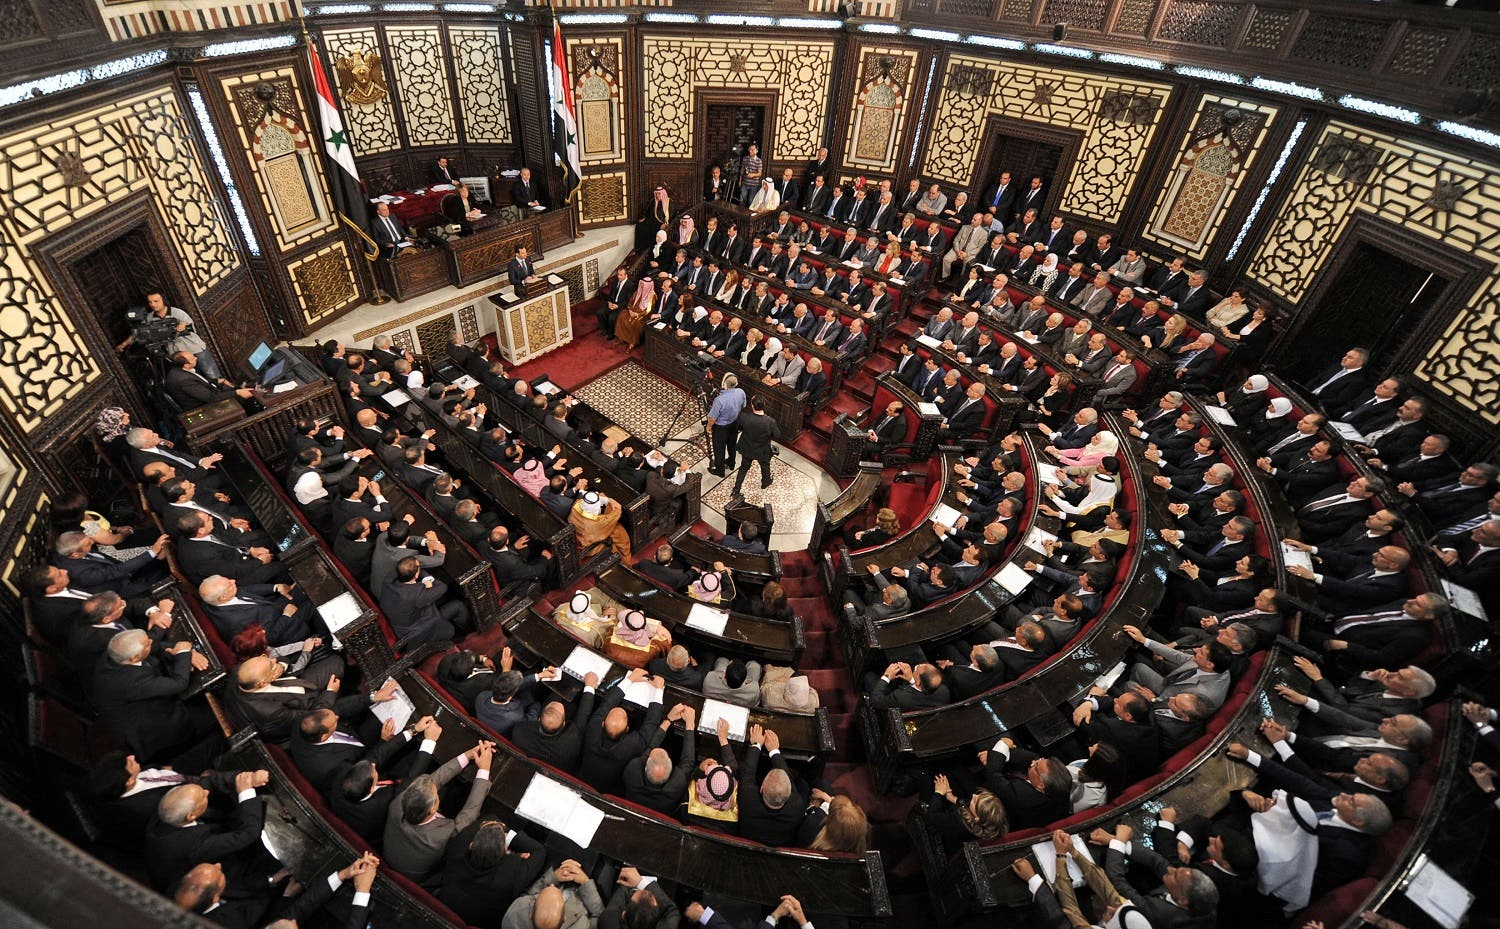 A general view shows the Syrian Parliament members listening to Syria's president Bashar al-Assad while he talks on the podium in Damascus, Syria in this handout picture provided by SANA on June 7, 2016. SANA/Handout via Reuters